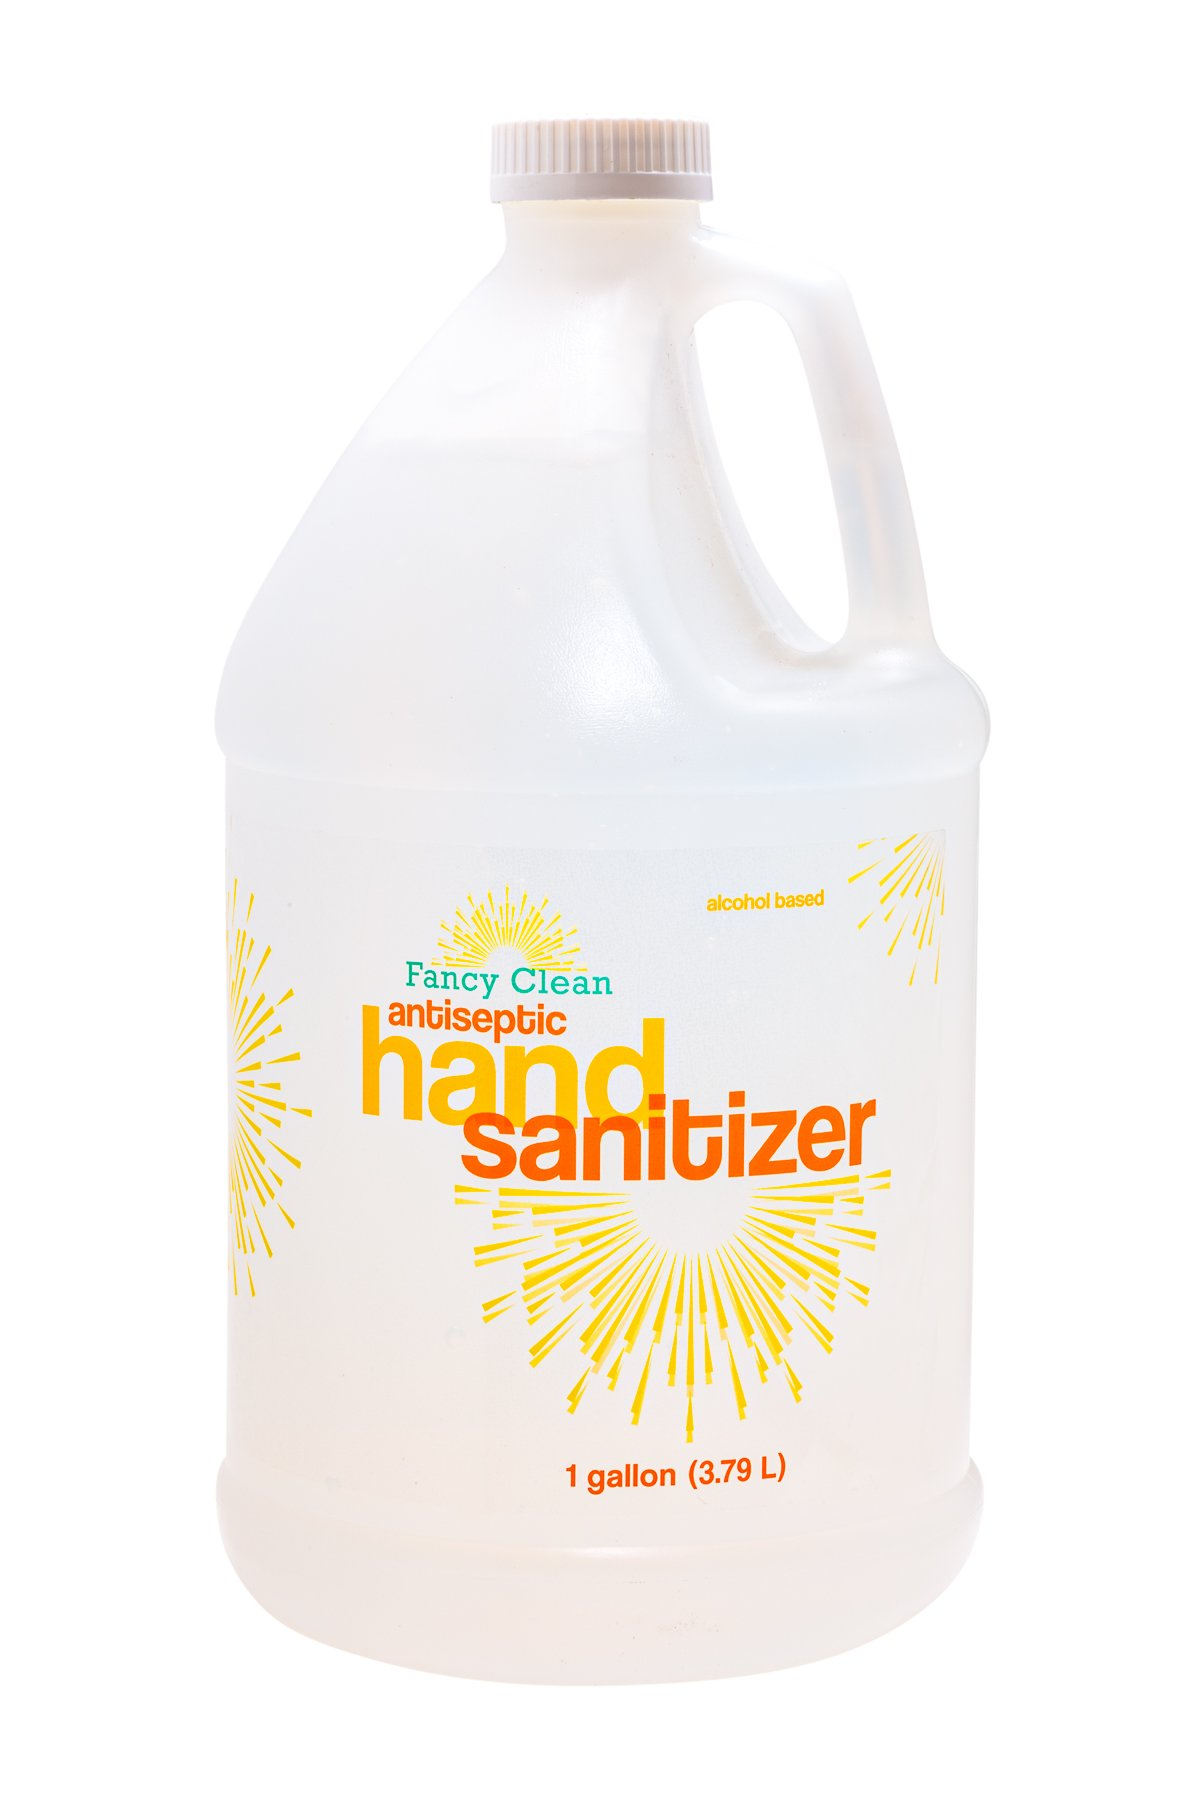 1gal - 70% Alcohol Hand Sanitizer Gel Supplier and Distributor of Bulk, LTL, Wholesale products